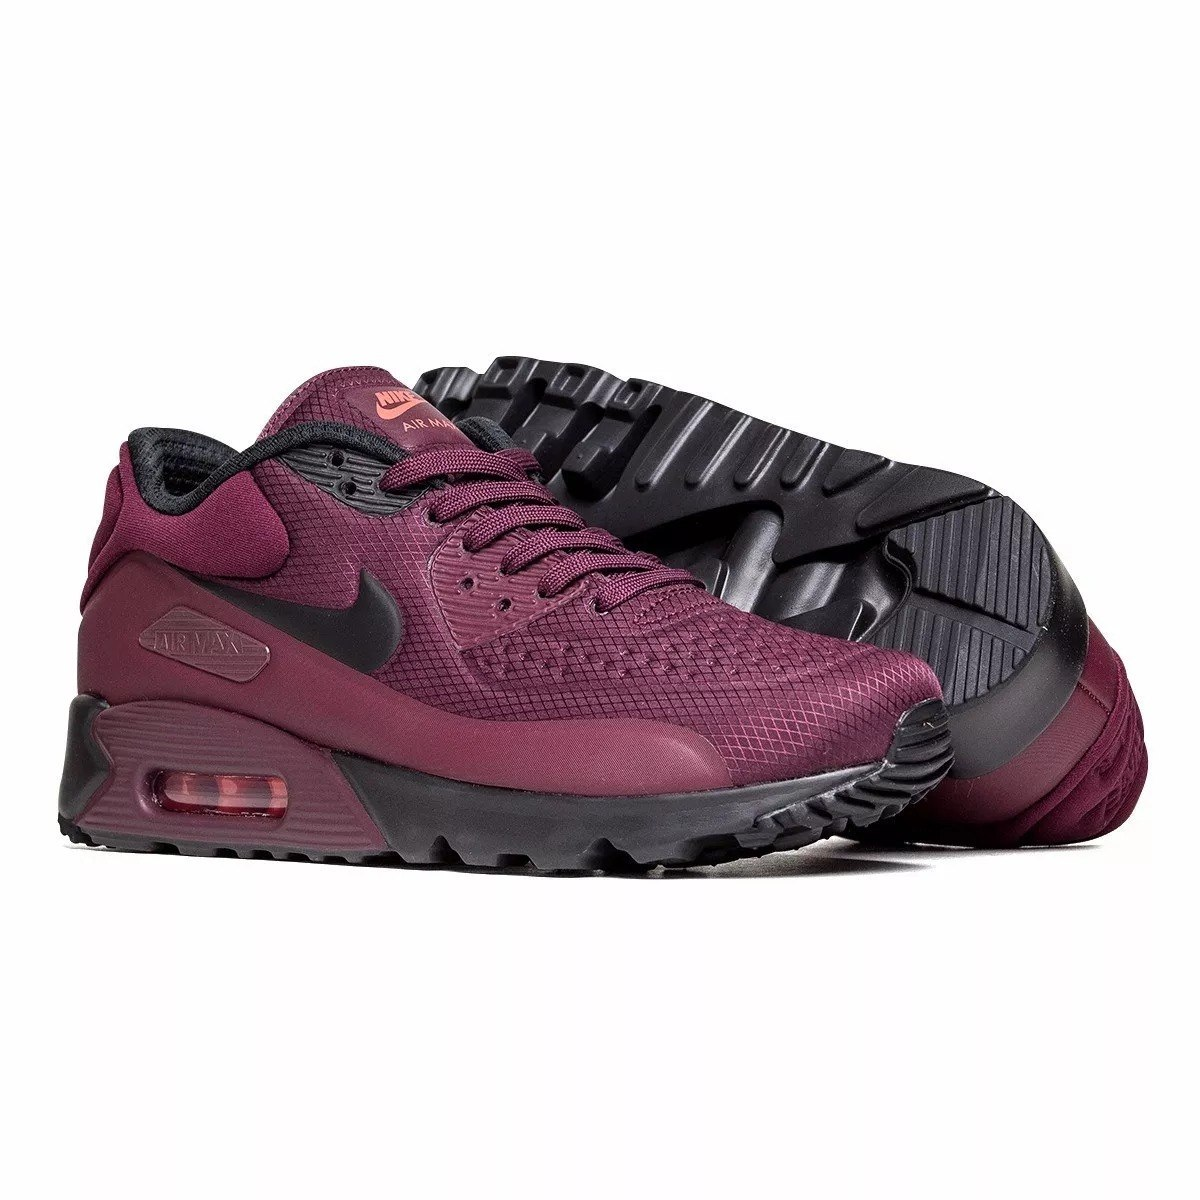 35be5264d4 54660 234f4; netherlands nike air max. carregando zoom. 8ffd5 5922c